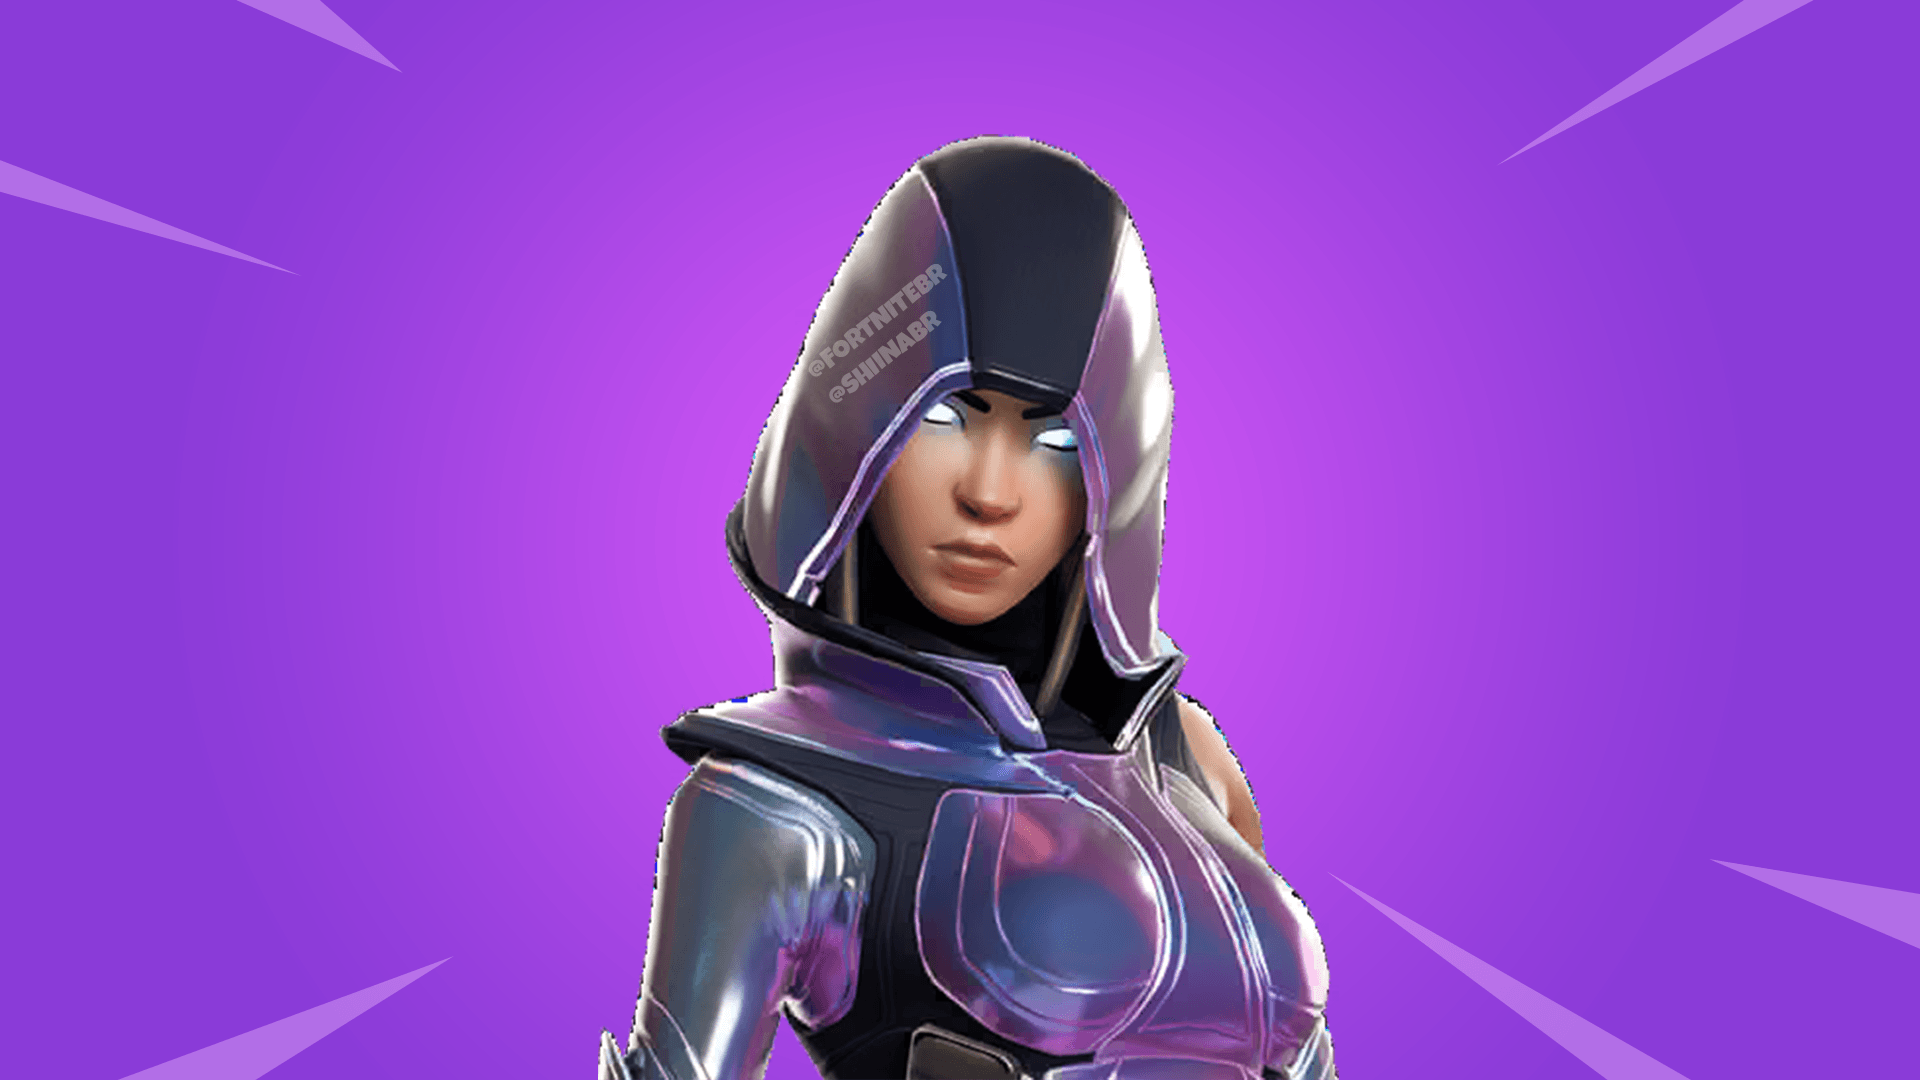 Fortnite Glow Wallpapers Top Free Fortnite Glow Backgrounds Wallpaperaccess